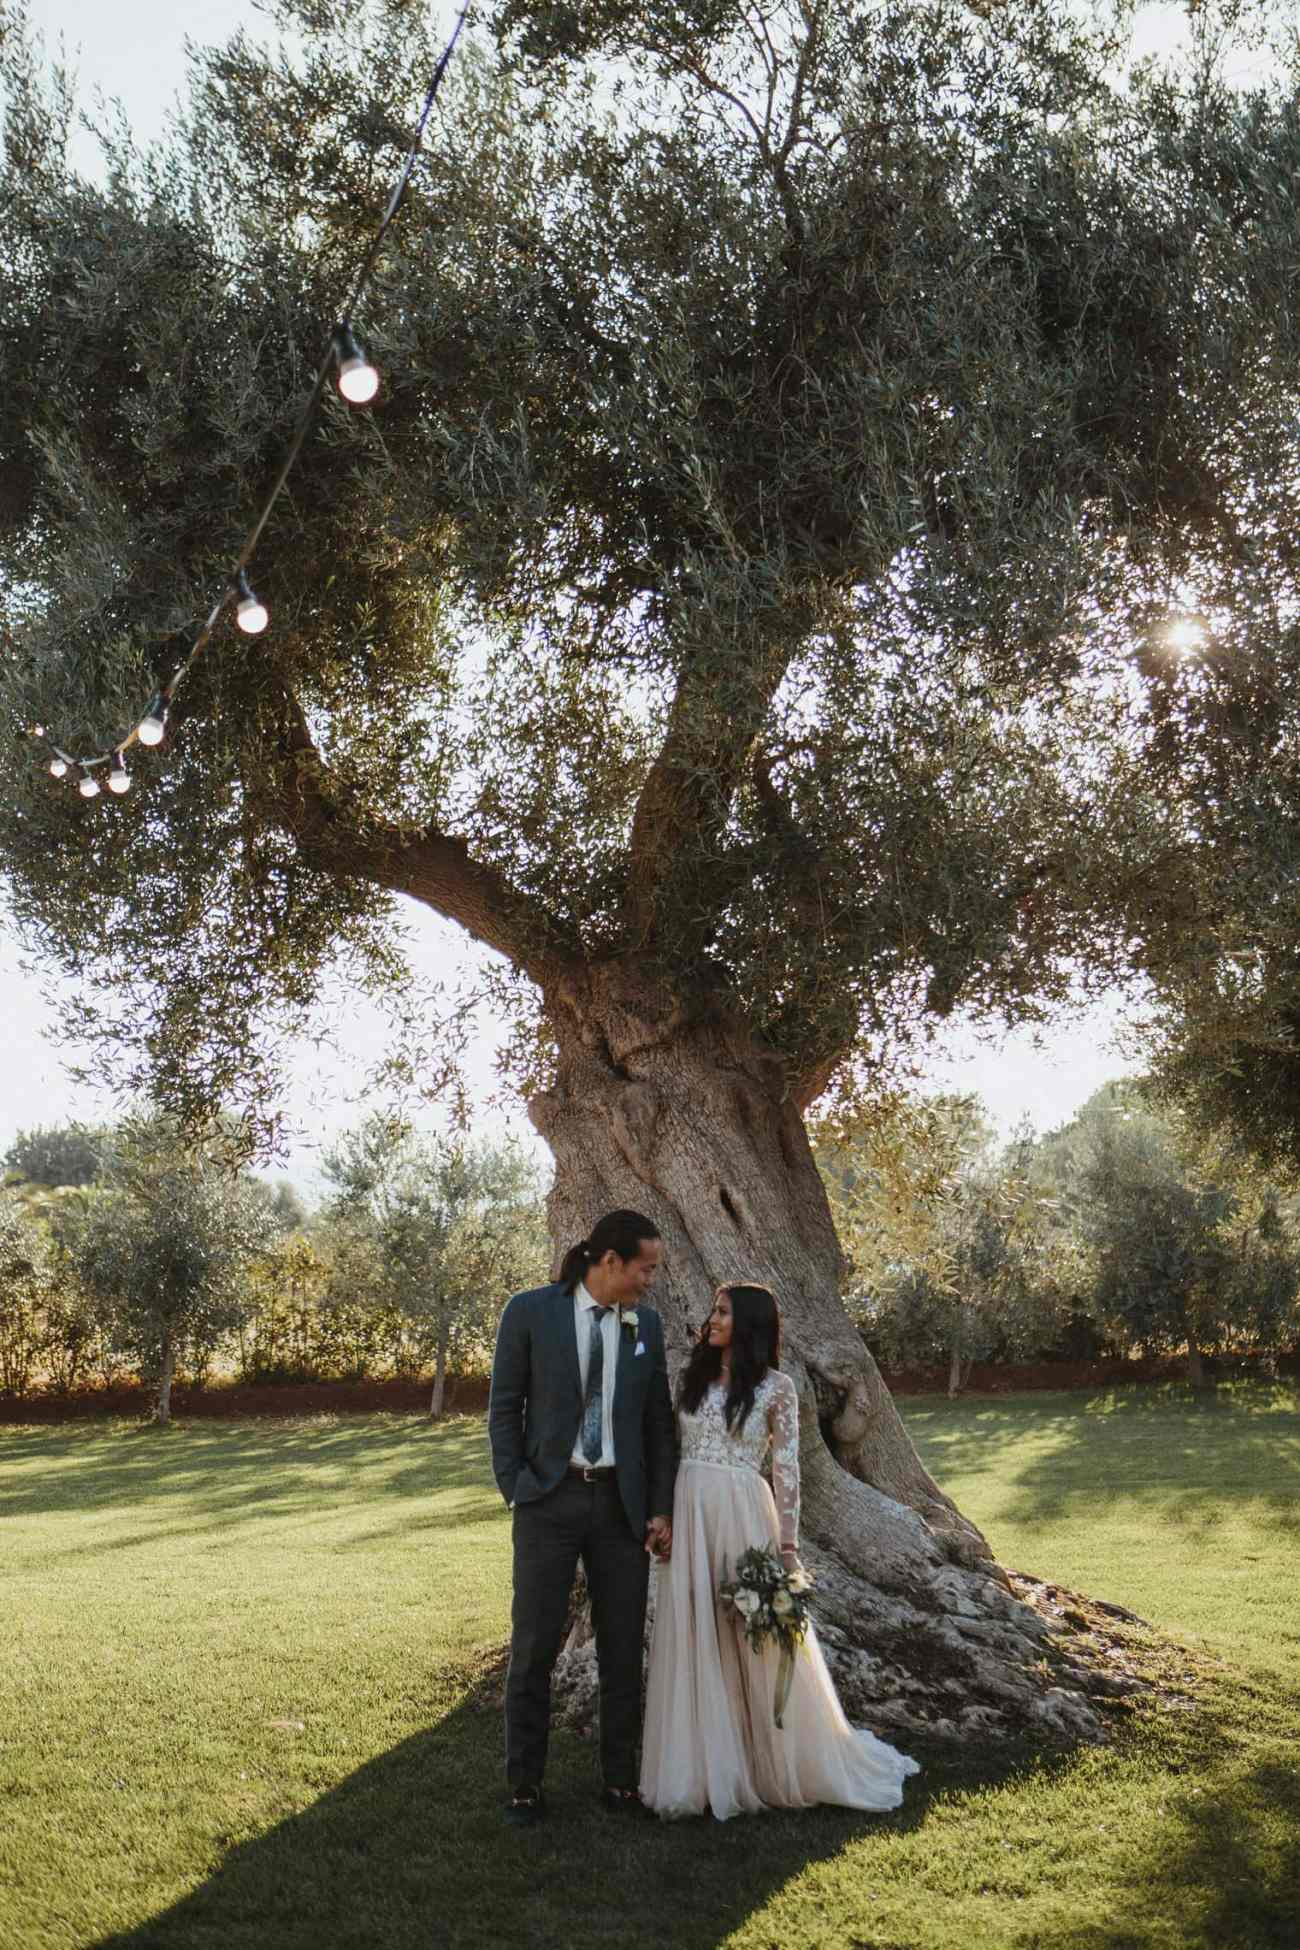 Beautiful couple at masseria torre coccaro for italy destination wedding